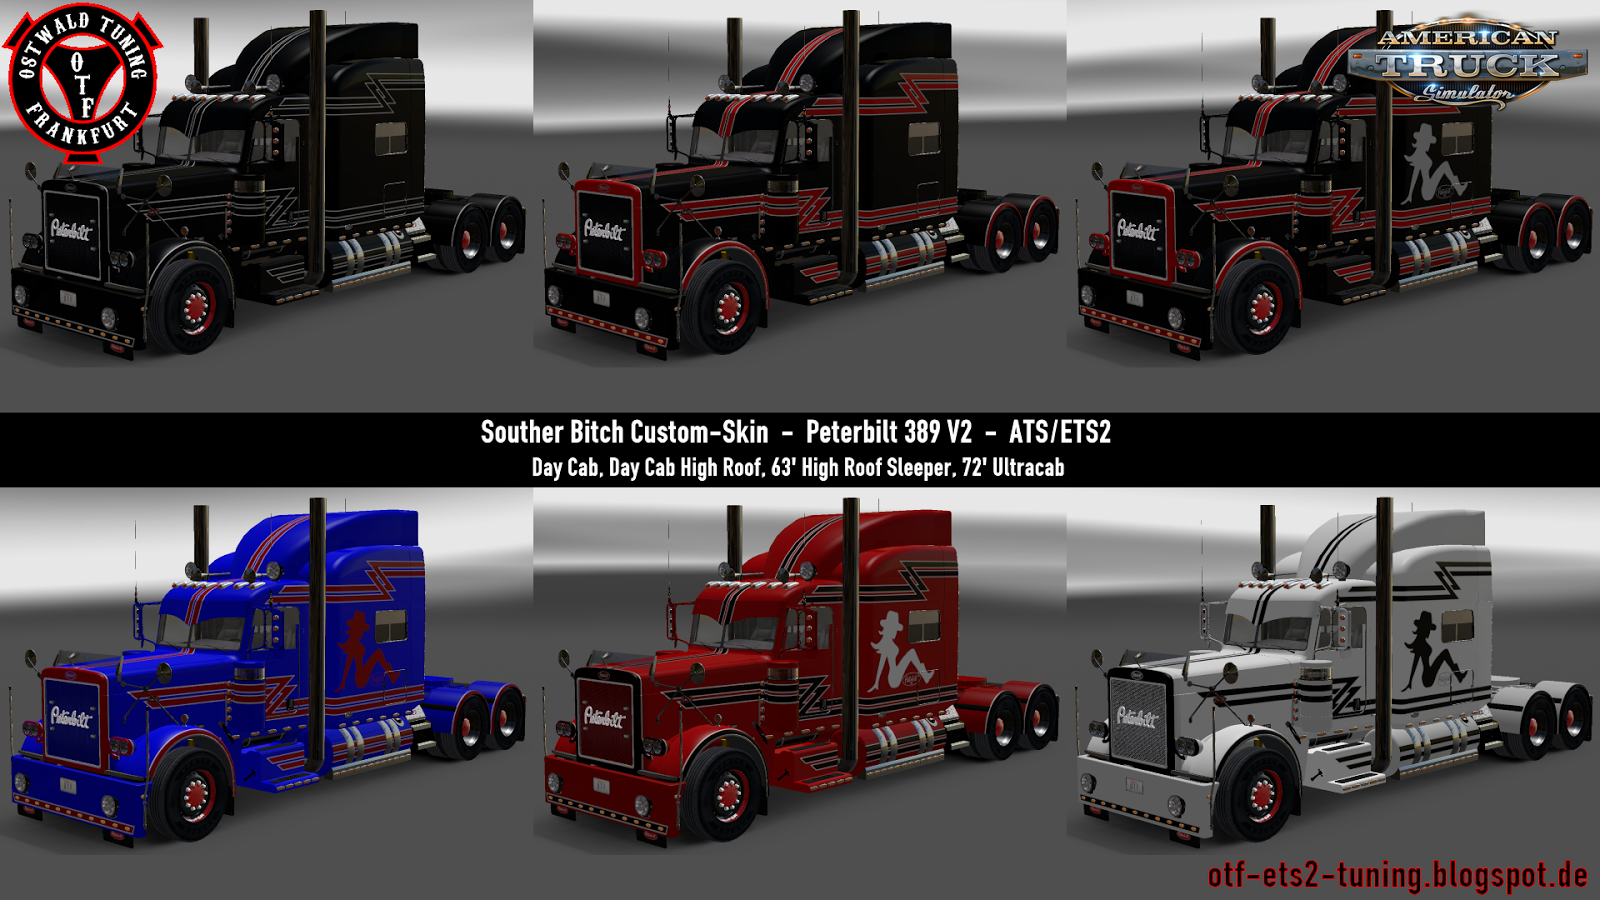 Southern Bitch Custom-Skin for Peterbilt 389 V2 (v1.6.x)